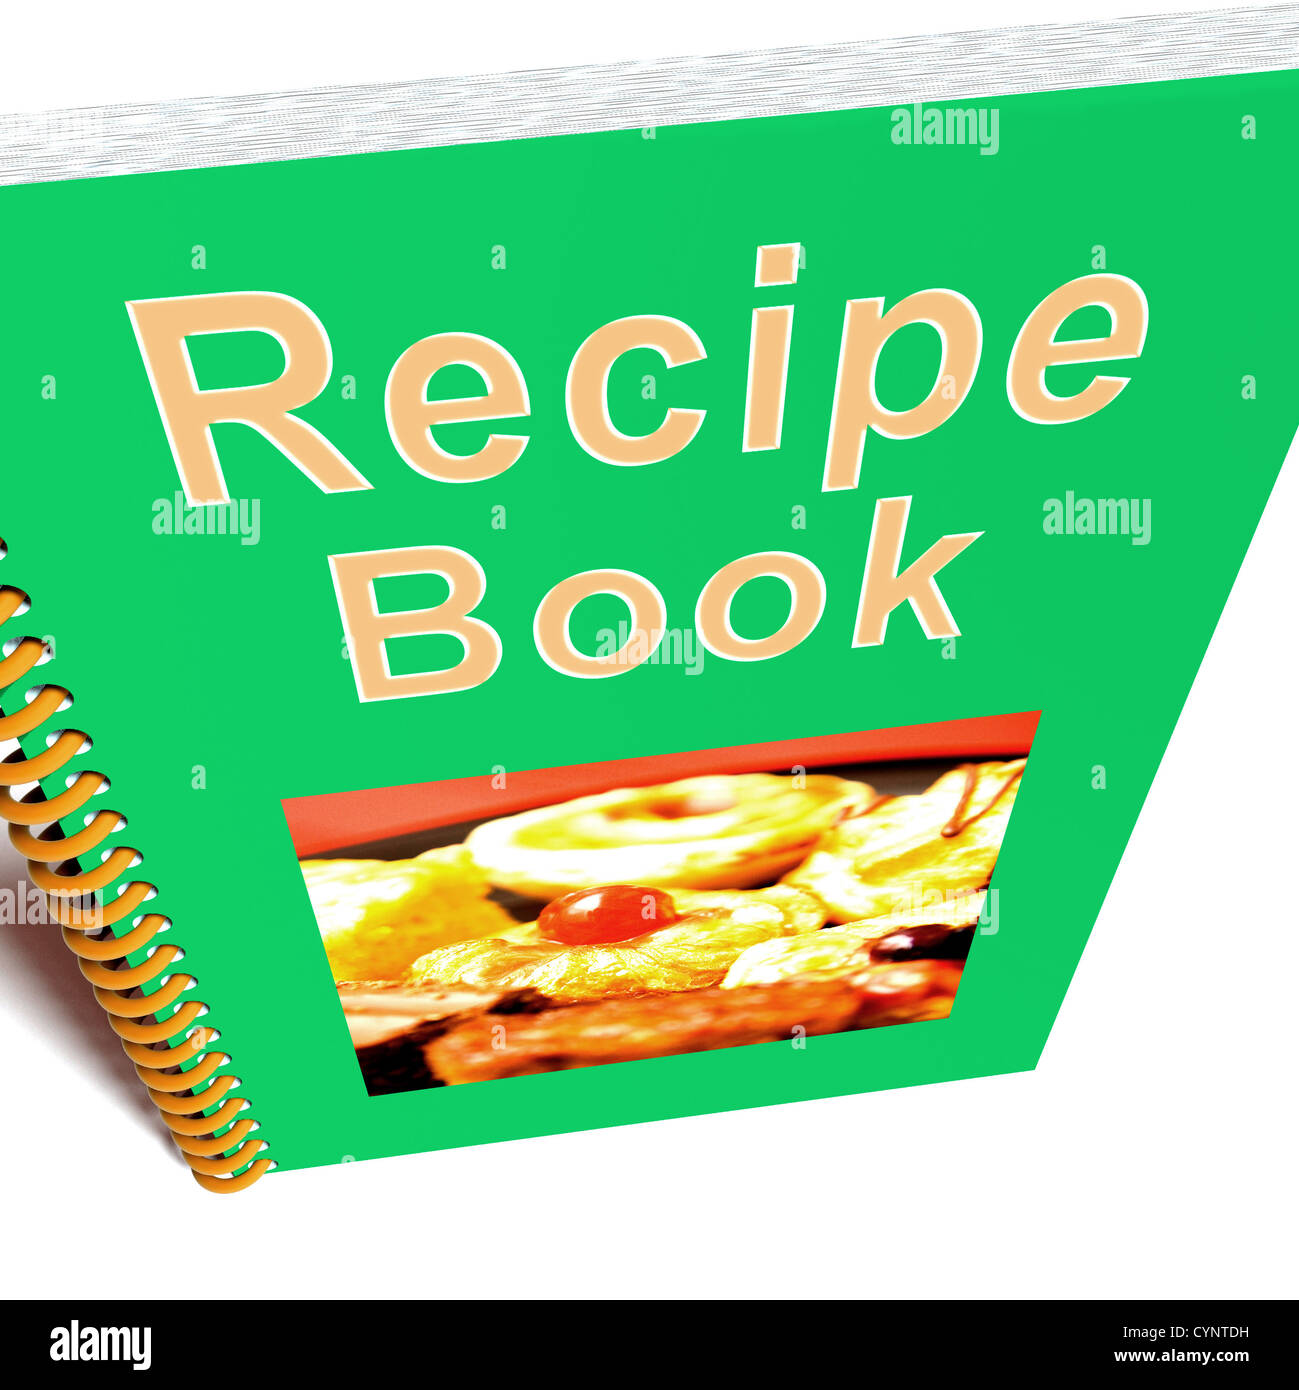 Recipe book for cooking or preparing food stock photo royalty free recipe book for cooking or preparing food forumfinder Choice Image